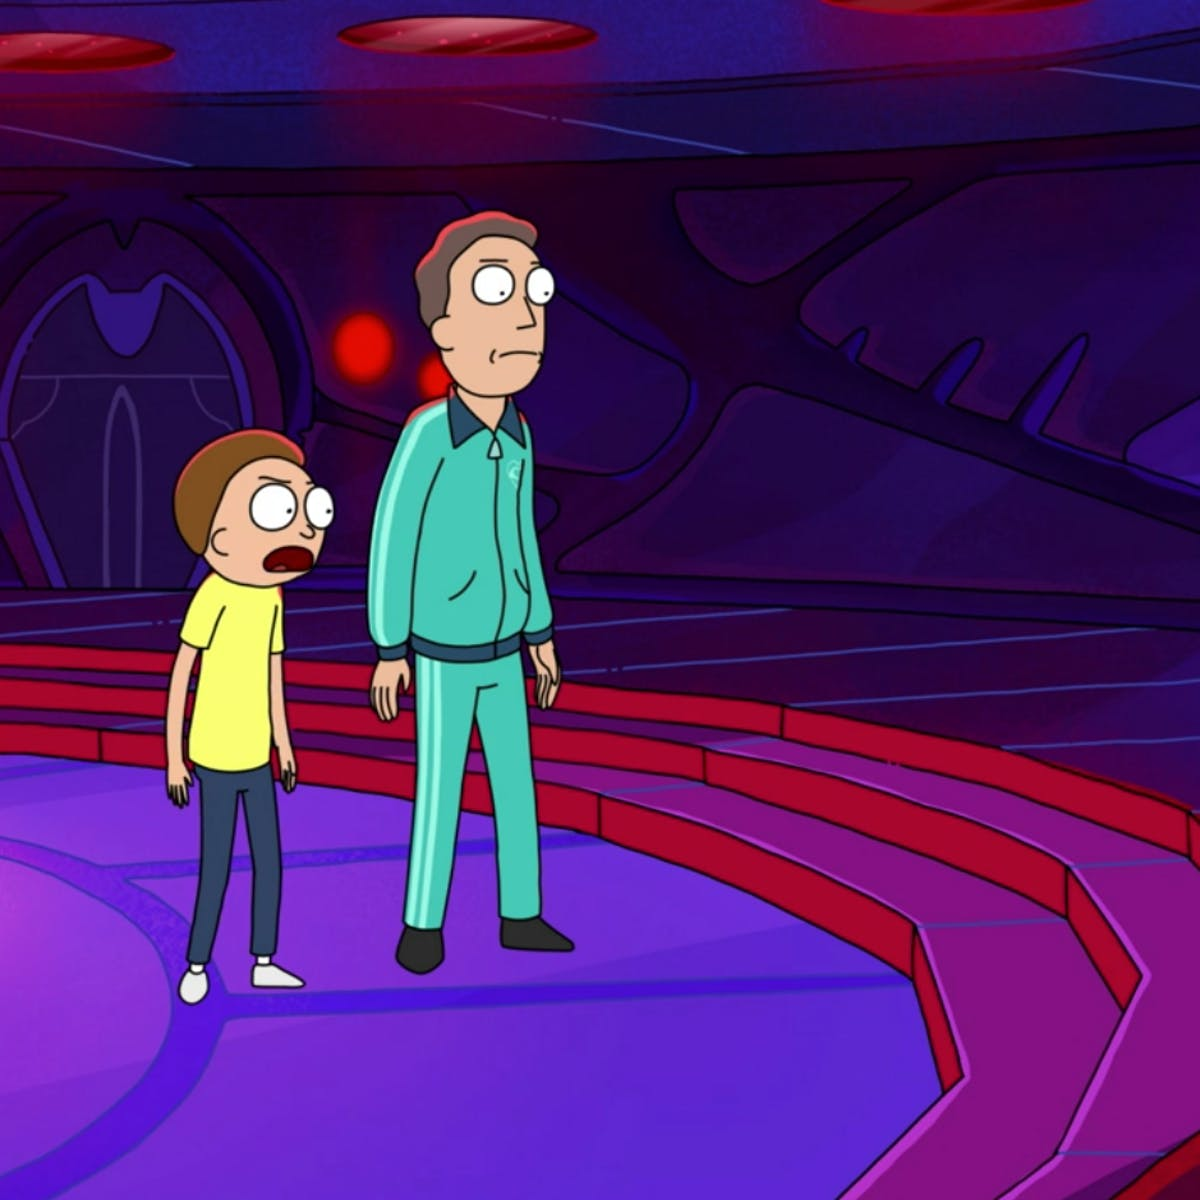 Here's Who Every Confirmed 'Rick and Morty' Season 4 Guest Star Could Play